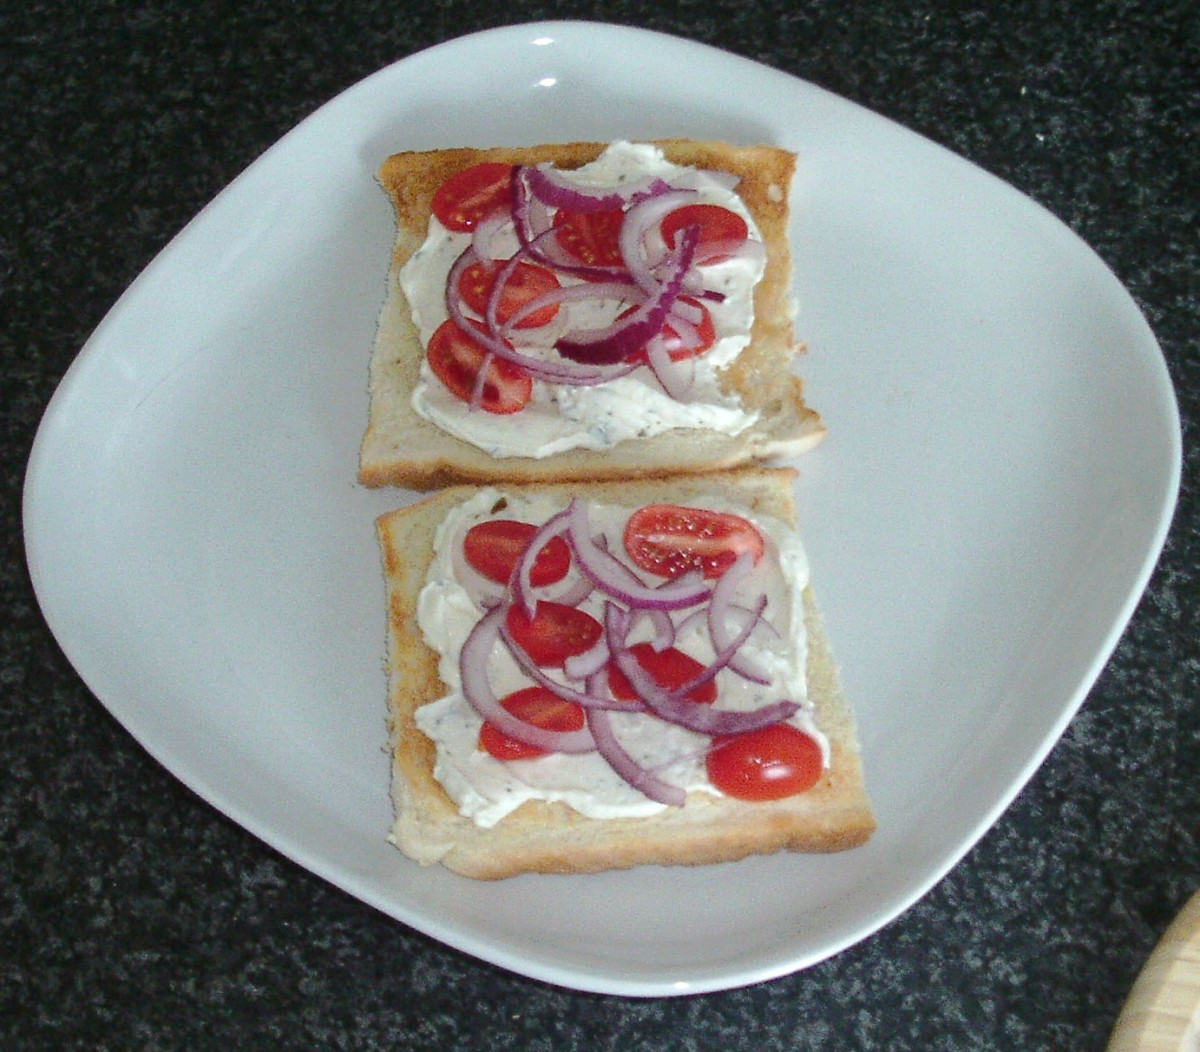 Tomatoes and red onion are scattered over cream cheese